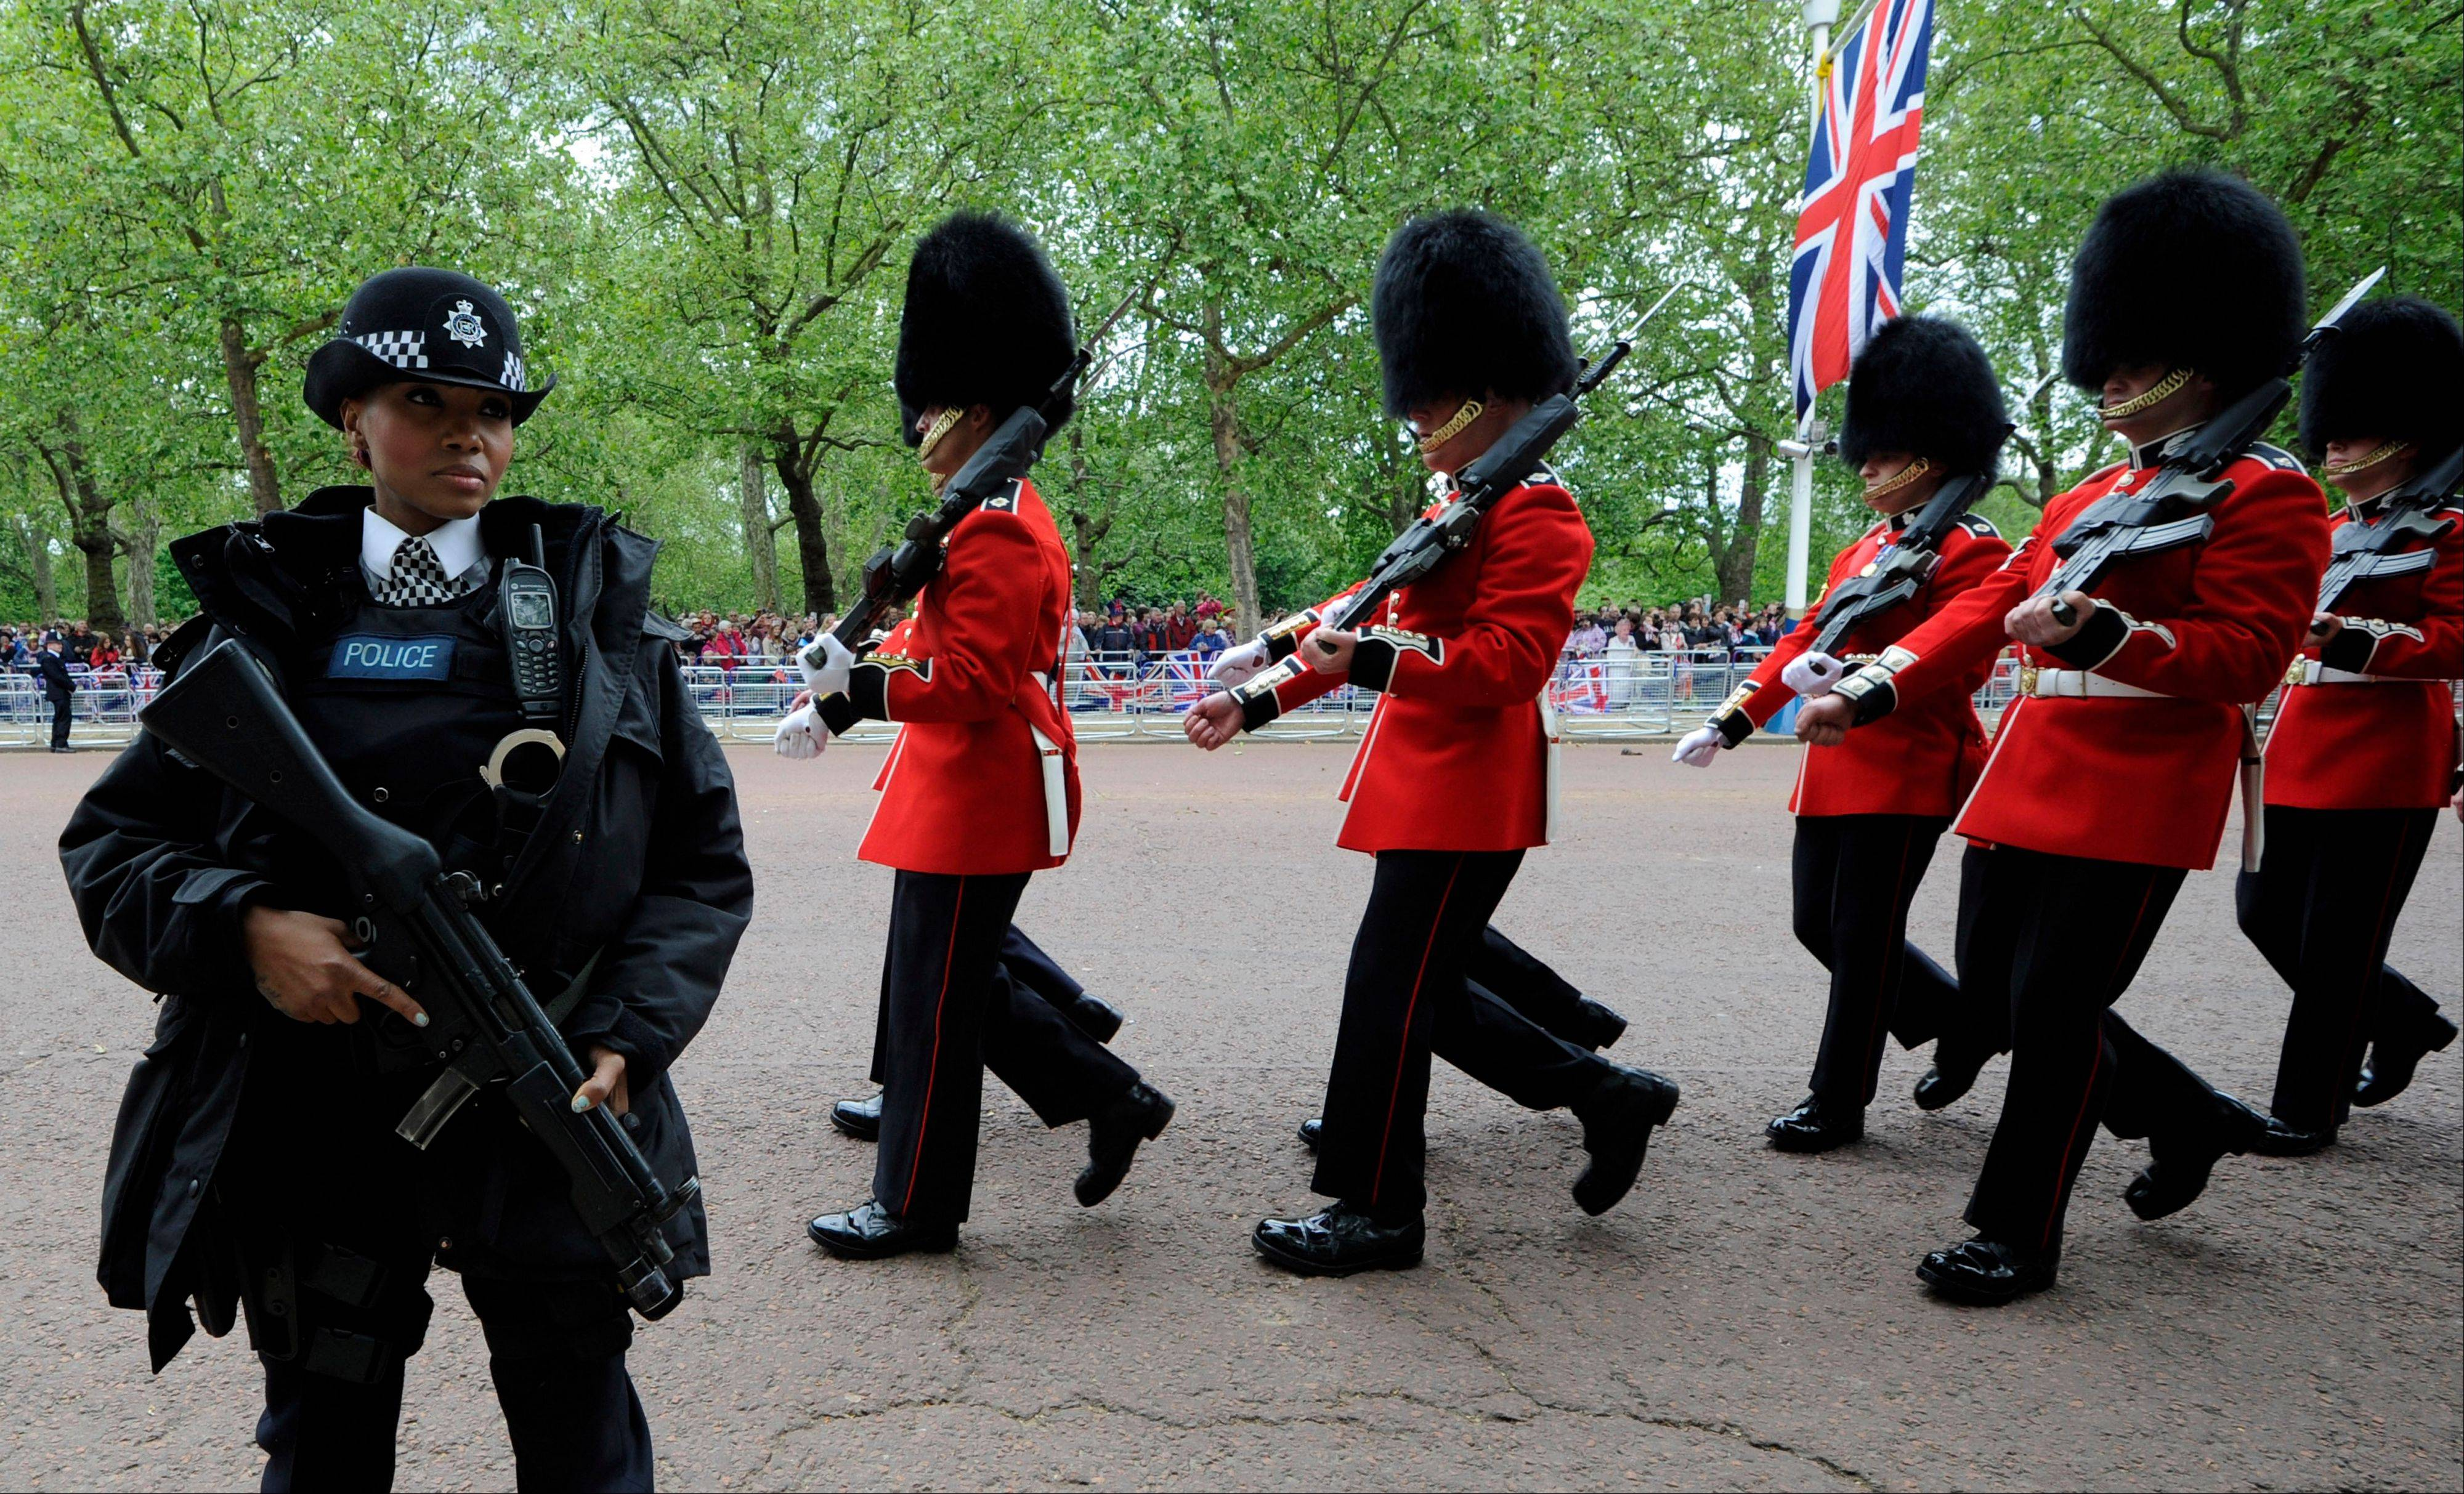 Soldiers move along The Mall to take their positions as part of Queen Elizabeth II Diamond Jubilee celebrations, London, Tuesday June 5, 2012. Queen Elizabeth II will make a rare address to the nation at the conclusion of festivities marking her 60 years on the throne.